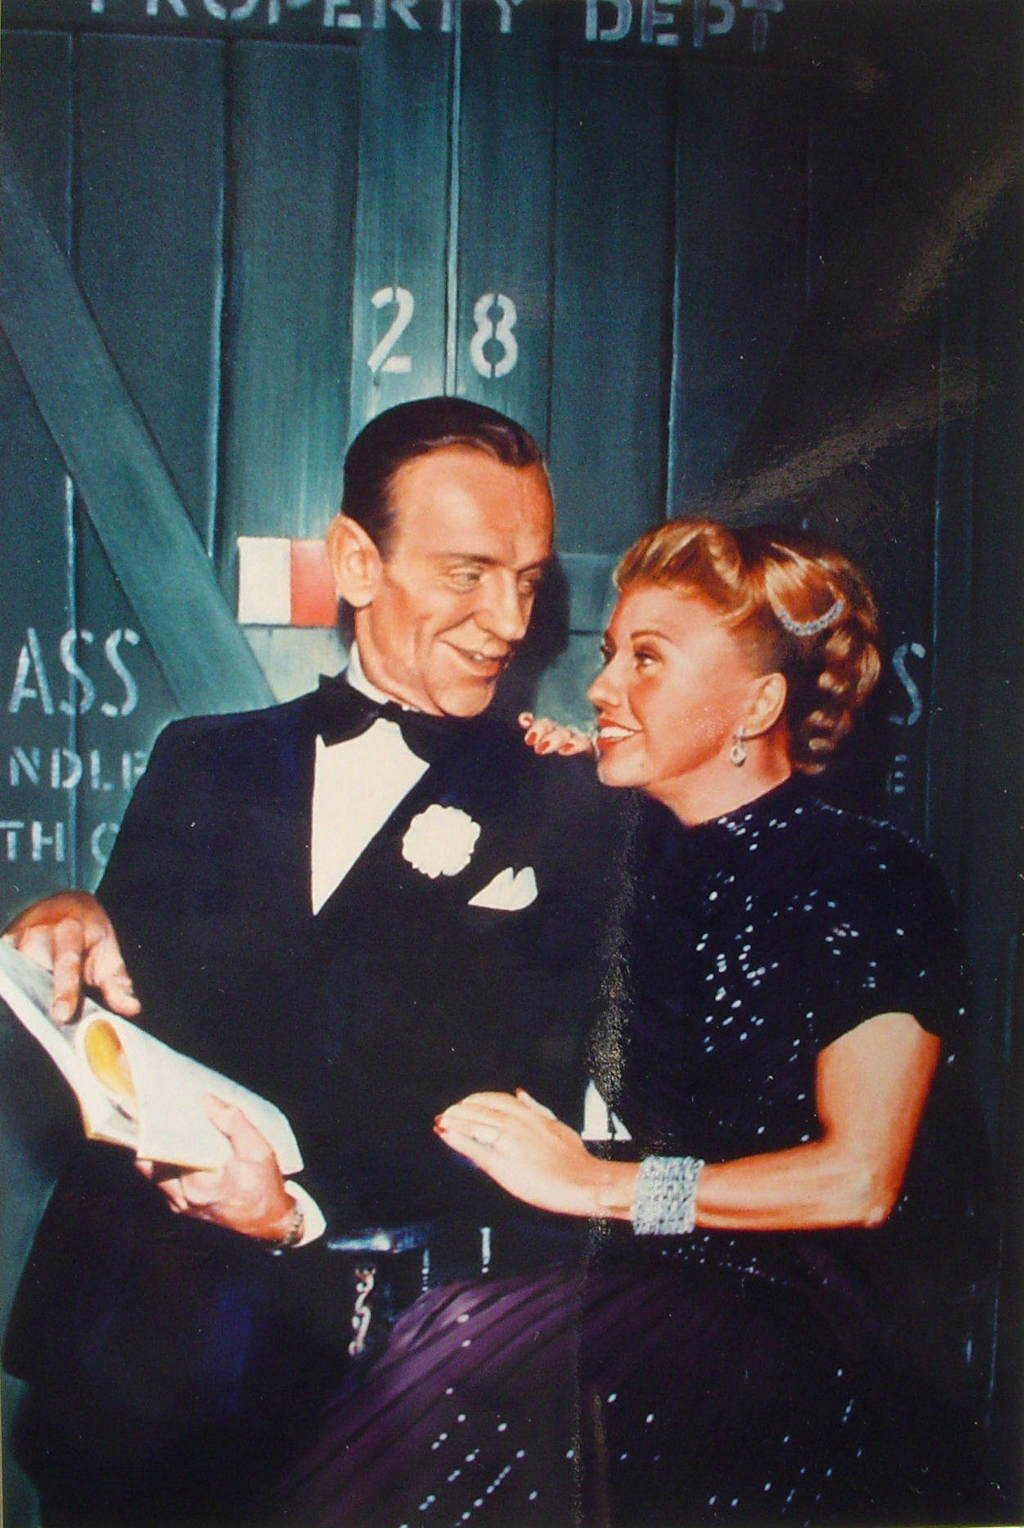 Portrait Of Fred Astaire And Ginger Rogers Oil Painting By Yordan Enchev Absolutearts Com